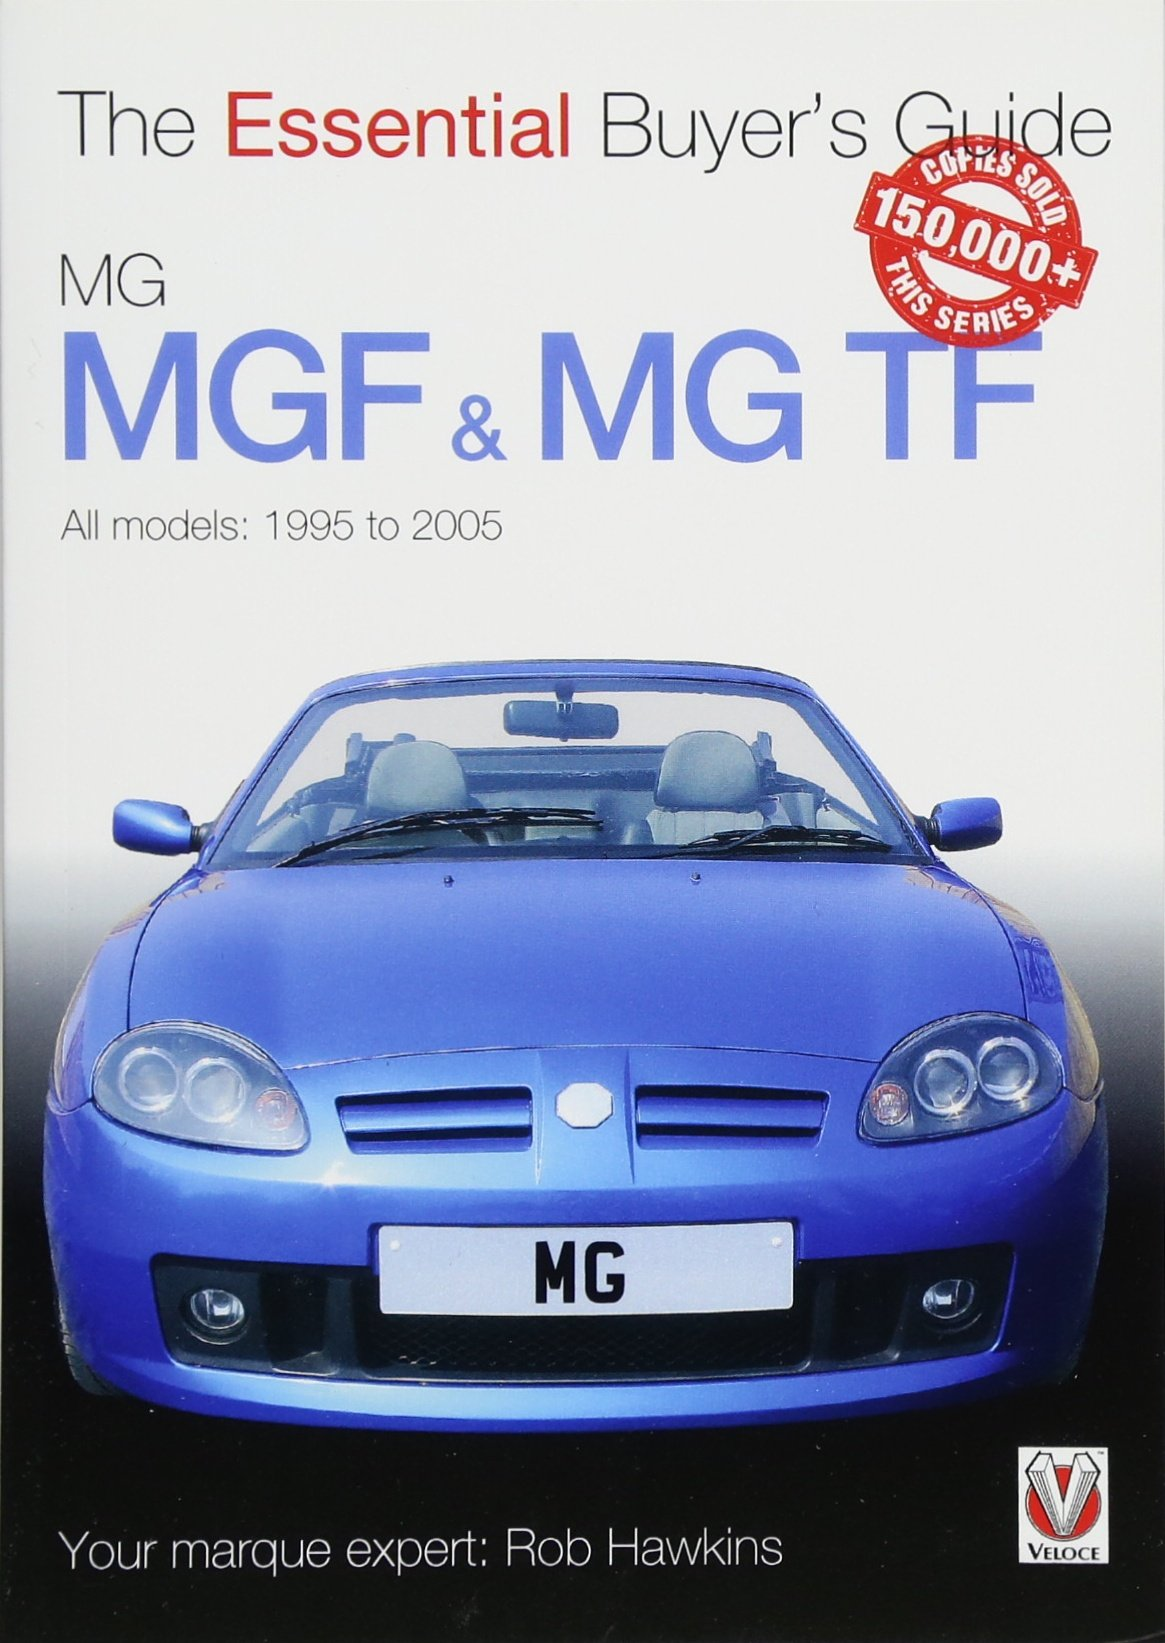 「MGF & MG TF: Essential Buyer's Guide」(Veloce Publishing)